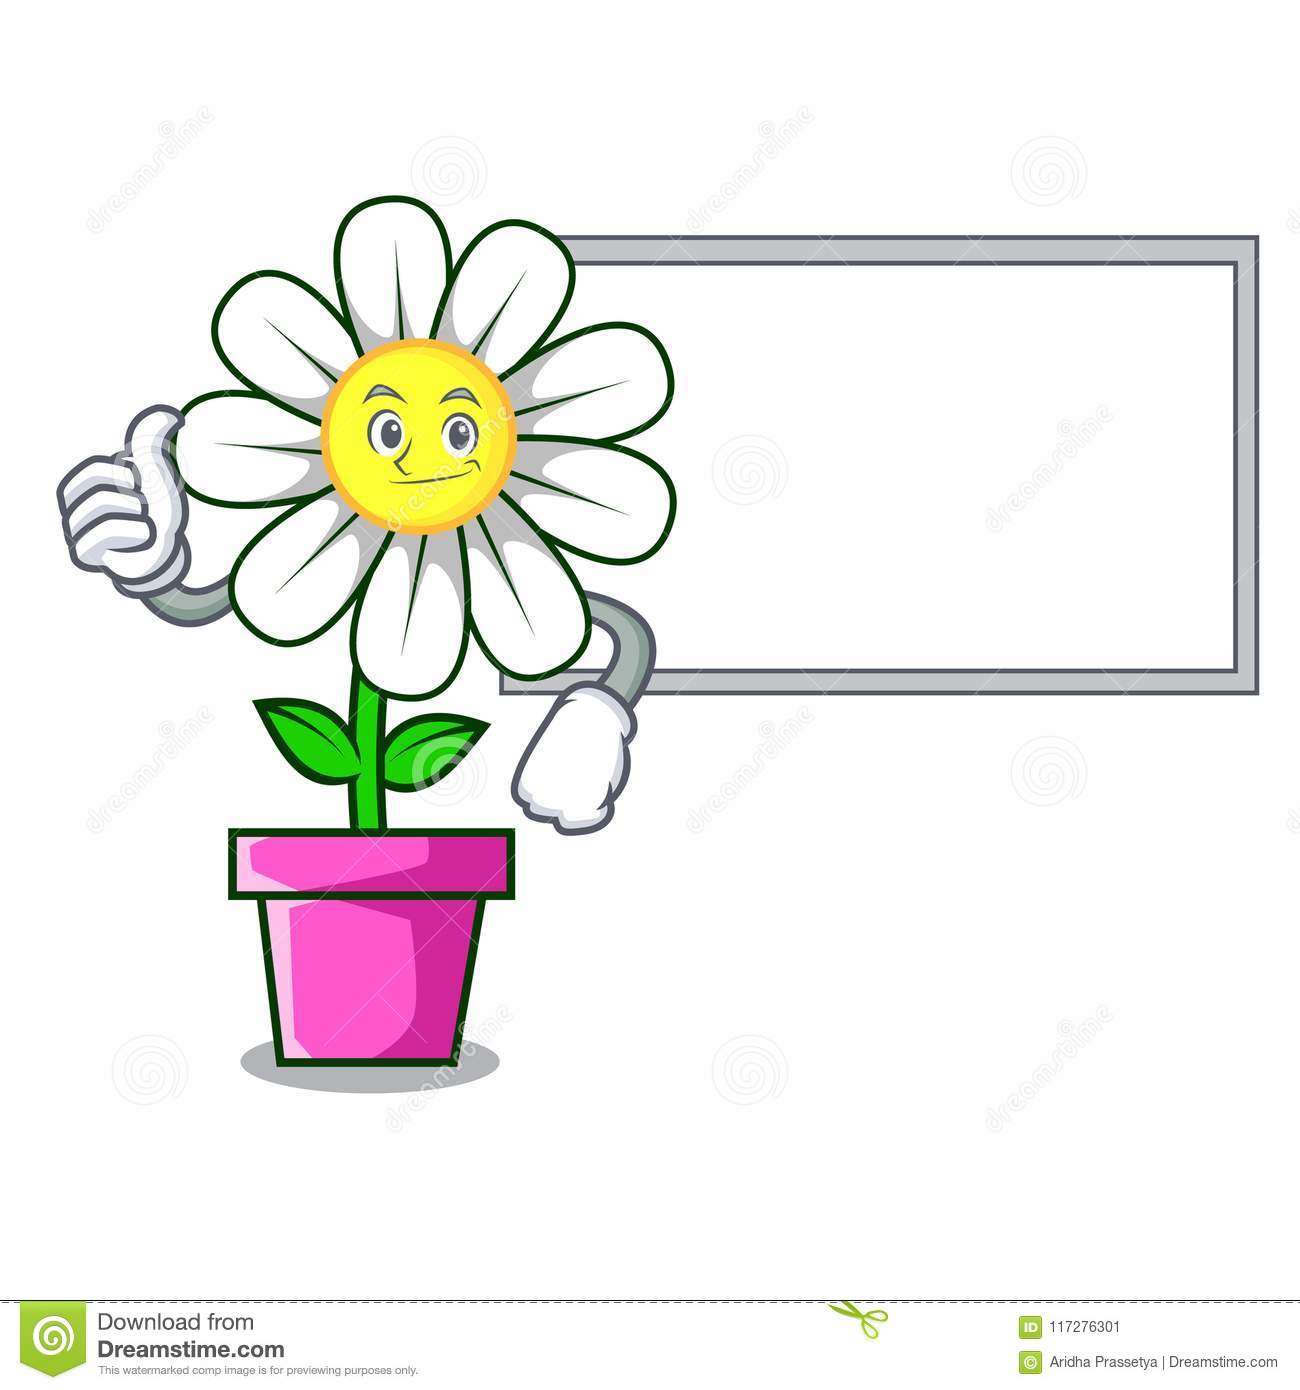 Thumbs Up With Board Daisy Flower Character Cartoon Stock Vector